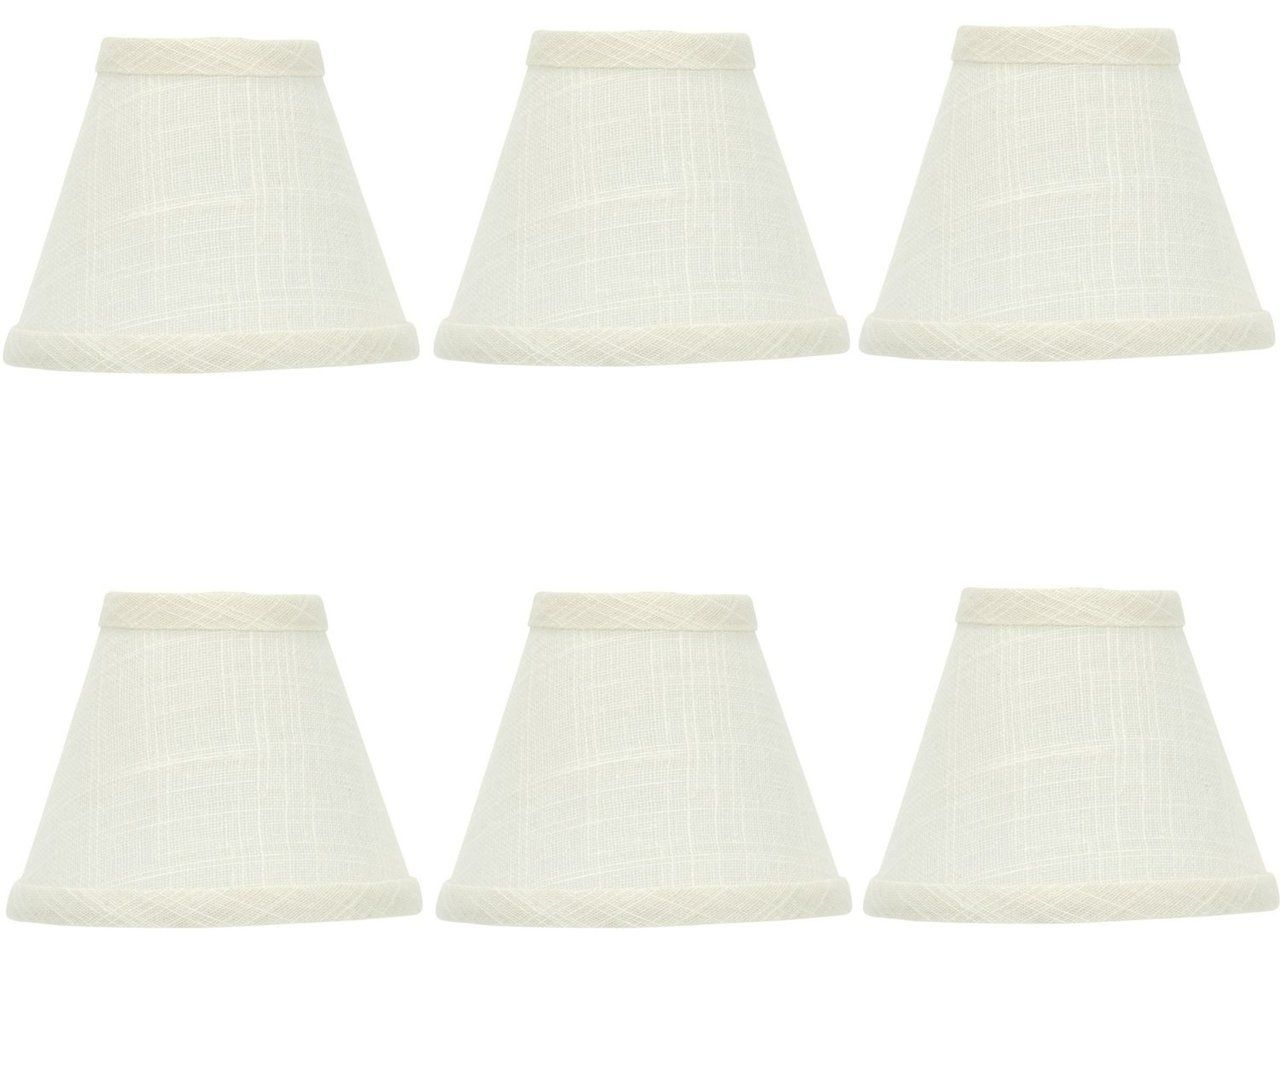 Chandelier Shades Ivory Pleated Fabric Lot of 4 Clip to